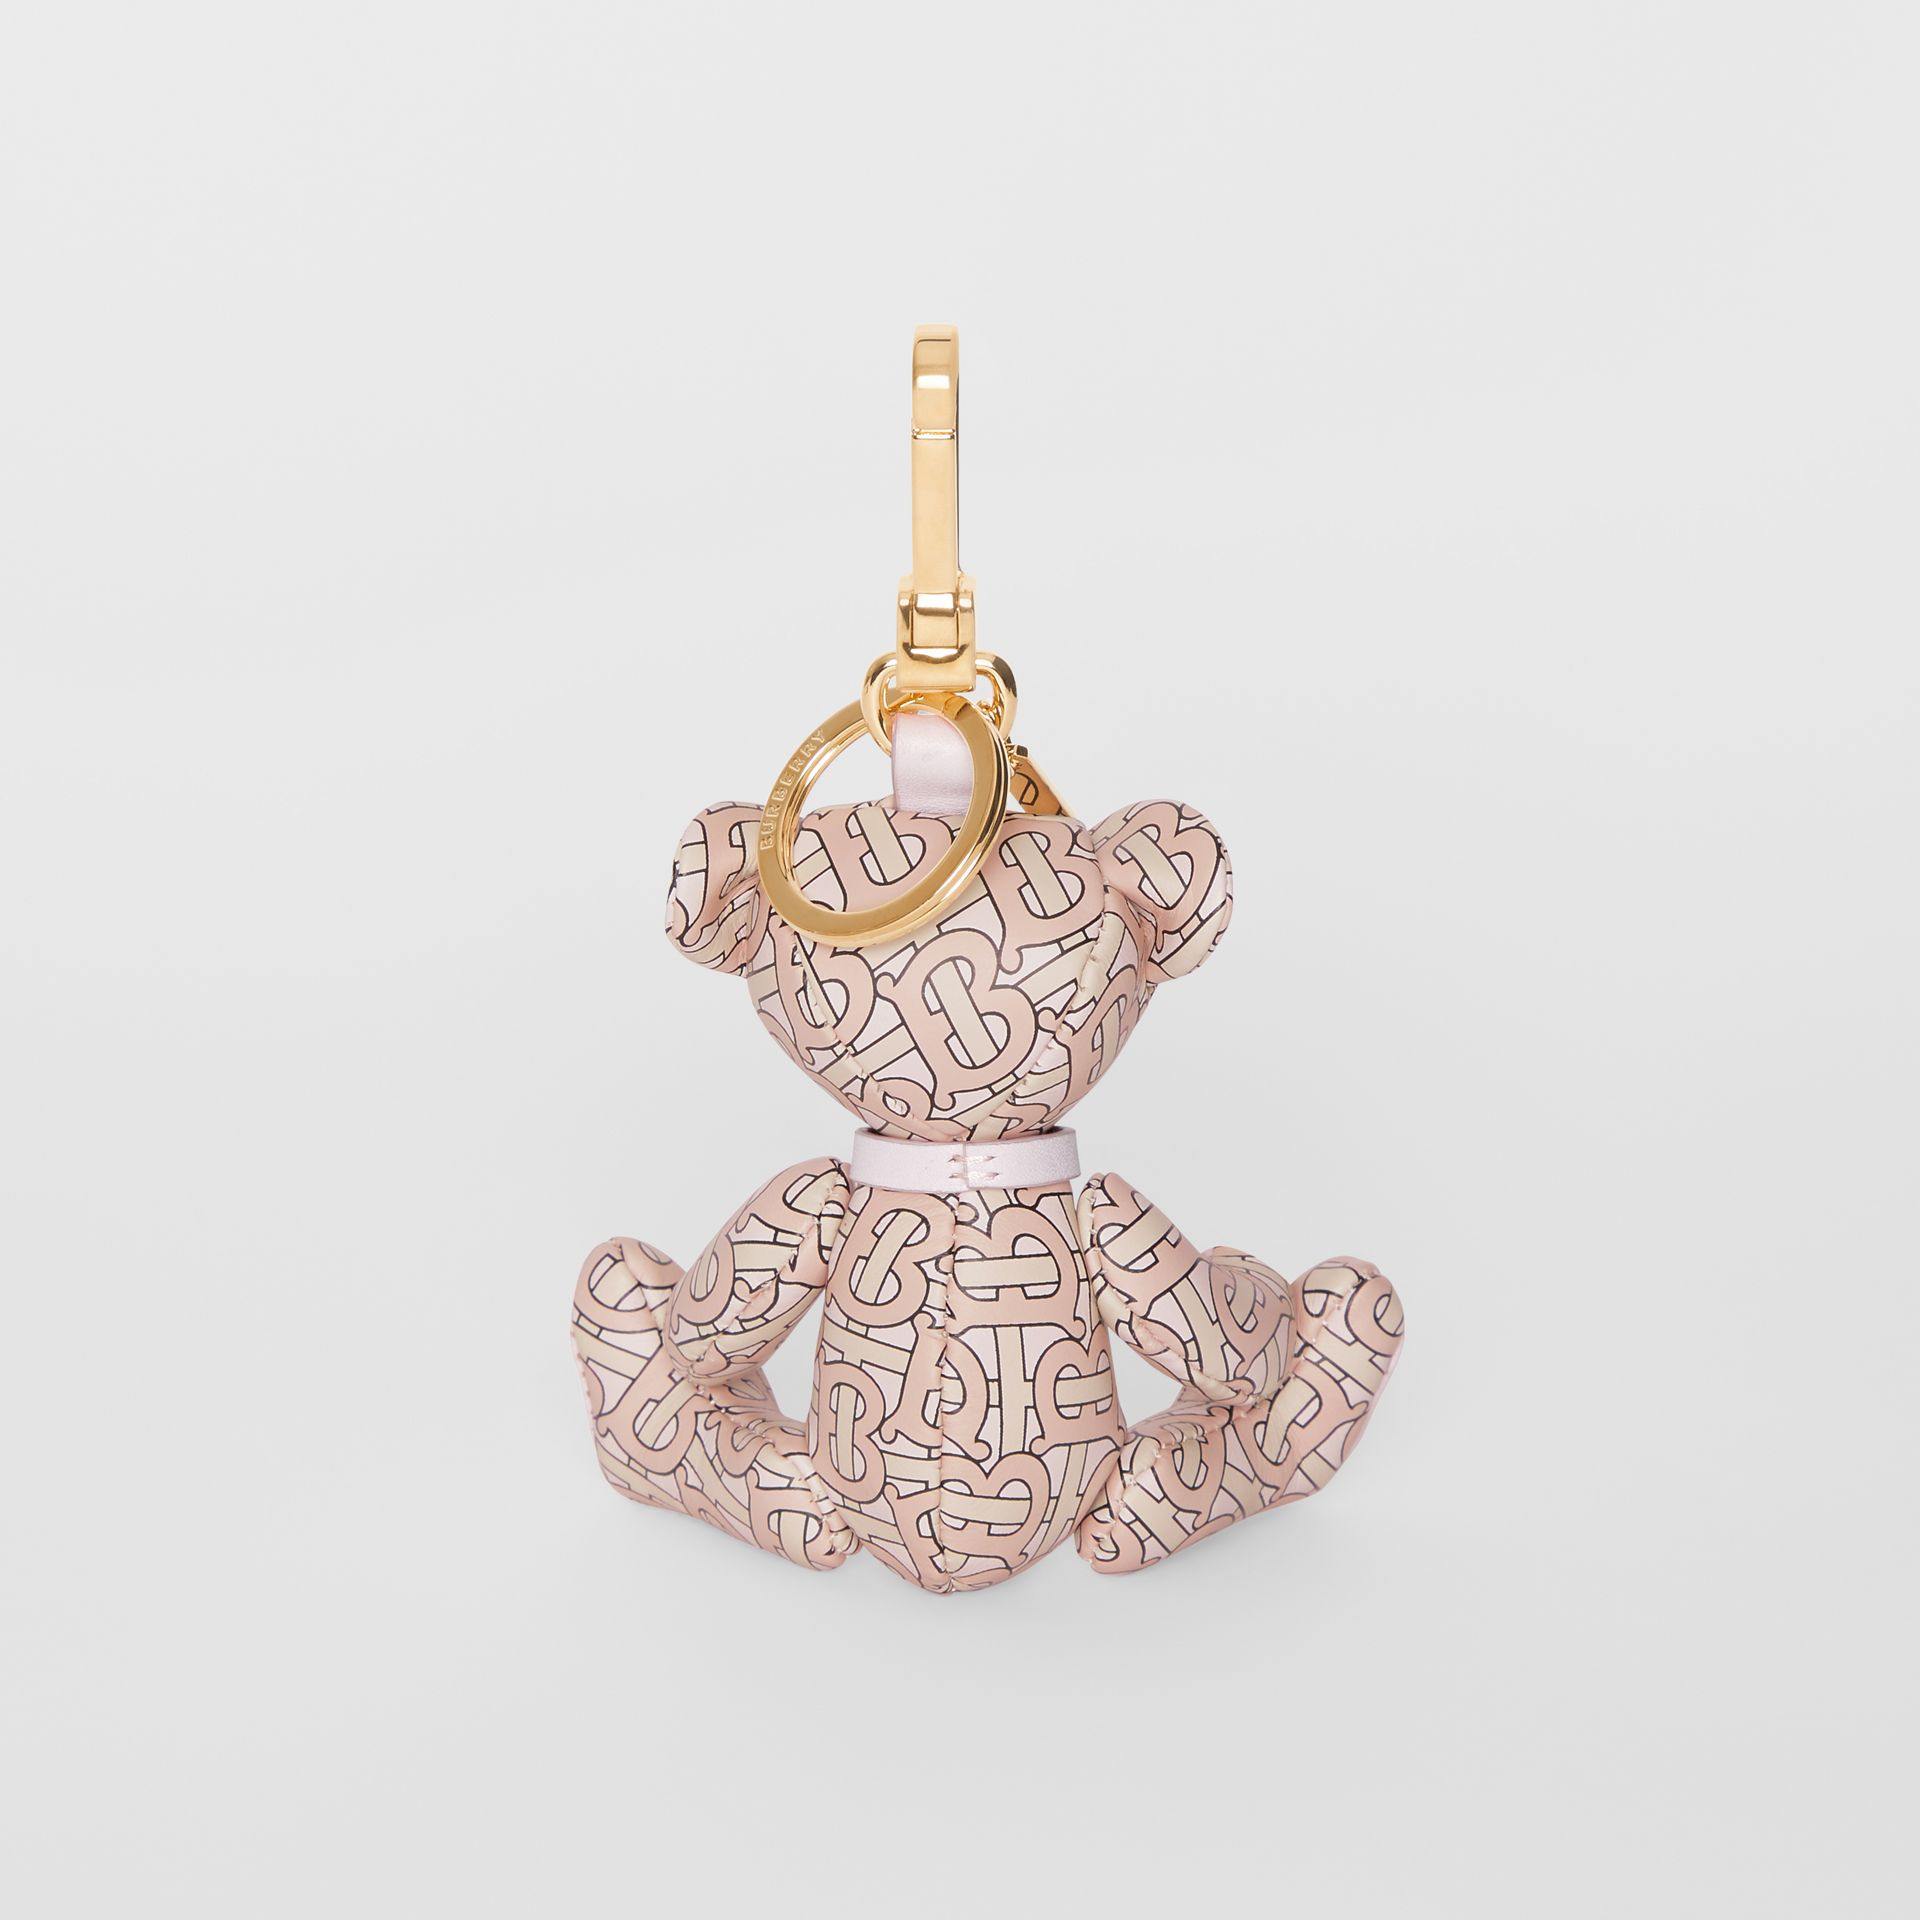 Bijou porte-clés Thomas Bear en cuir Monogram (Rose Blush) - Femme | Burberry - photo de la galerie 3